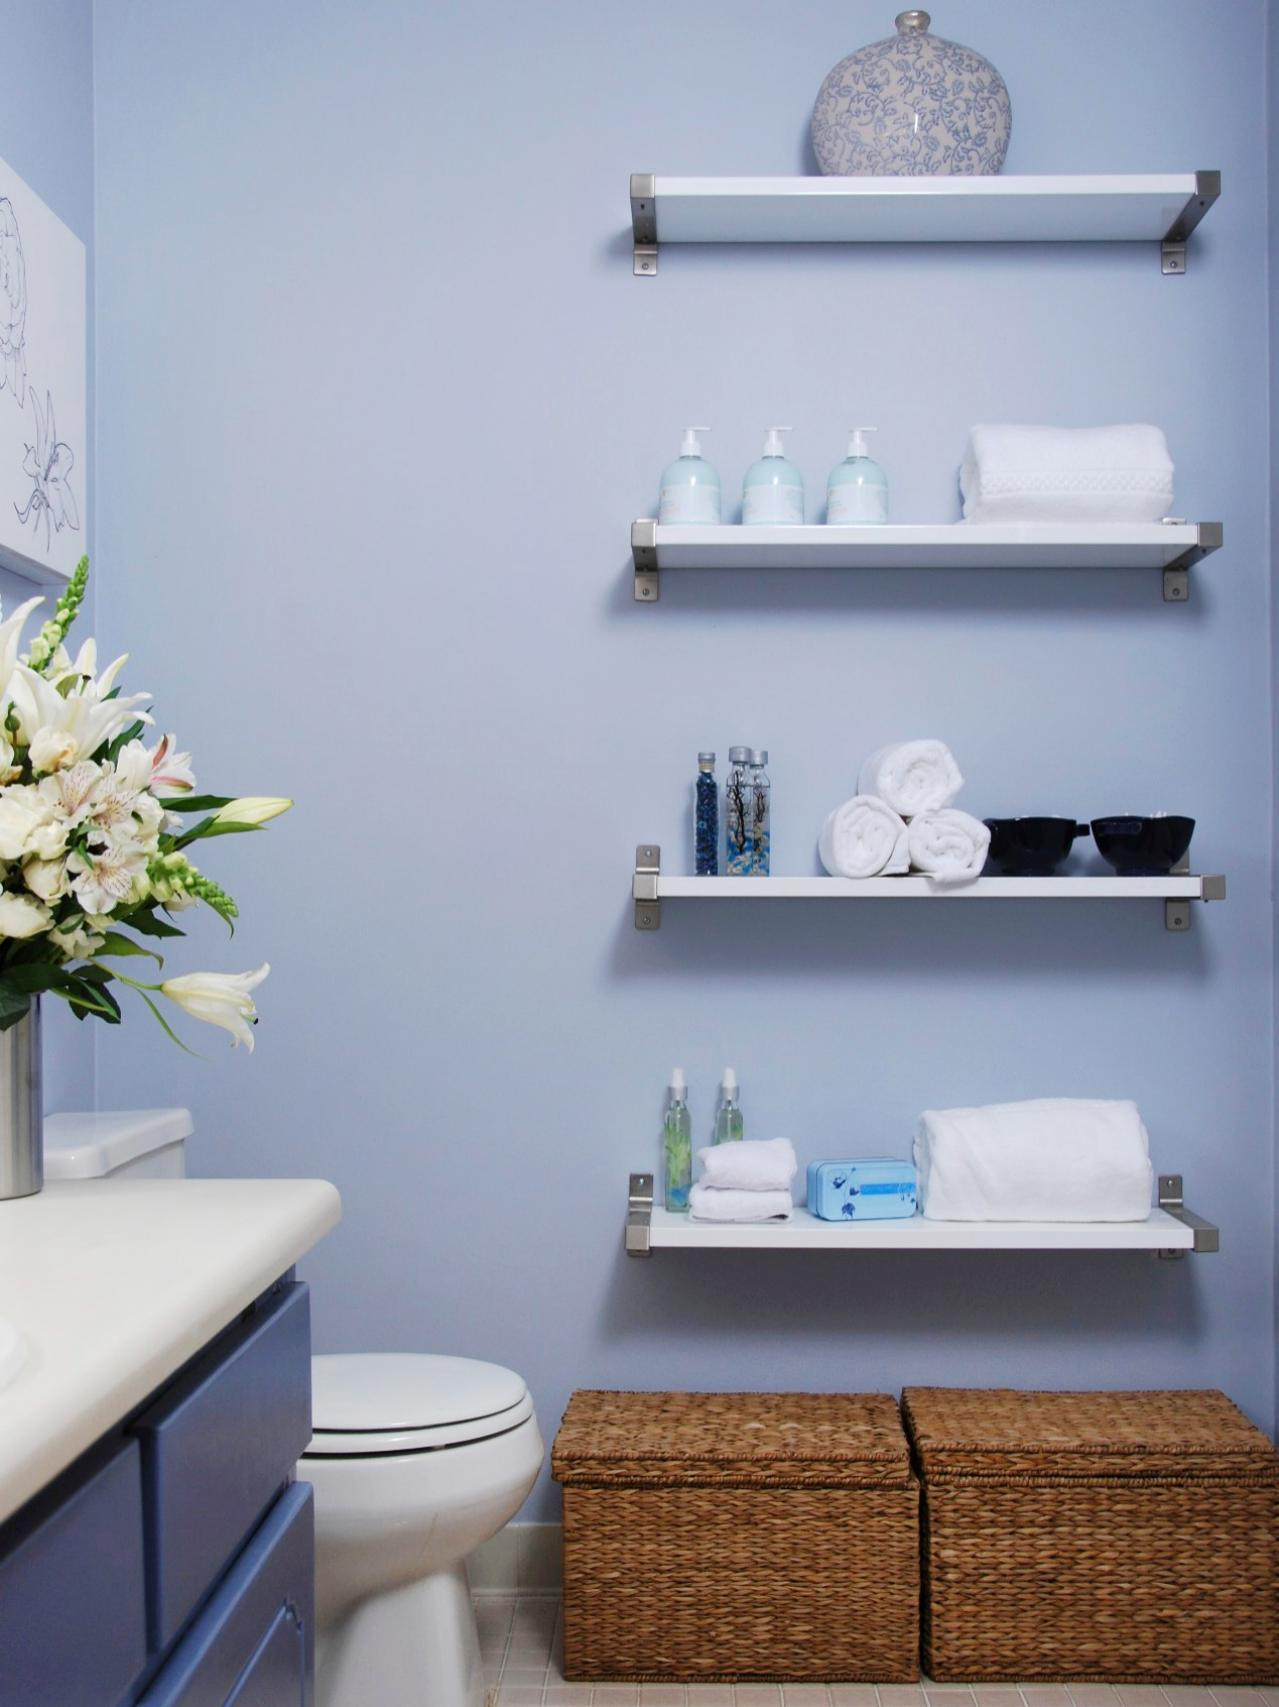 ways decorate with floating shelves decorating bathroom ideas contemporary line blue wall white box shelving unit shelf calgary cabinets ikea office storage wooden stand rustic